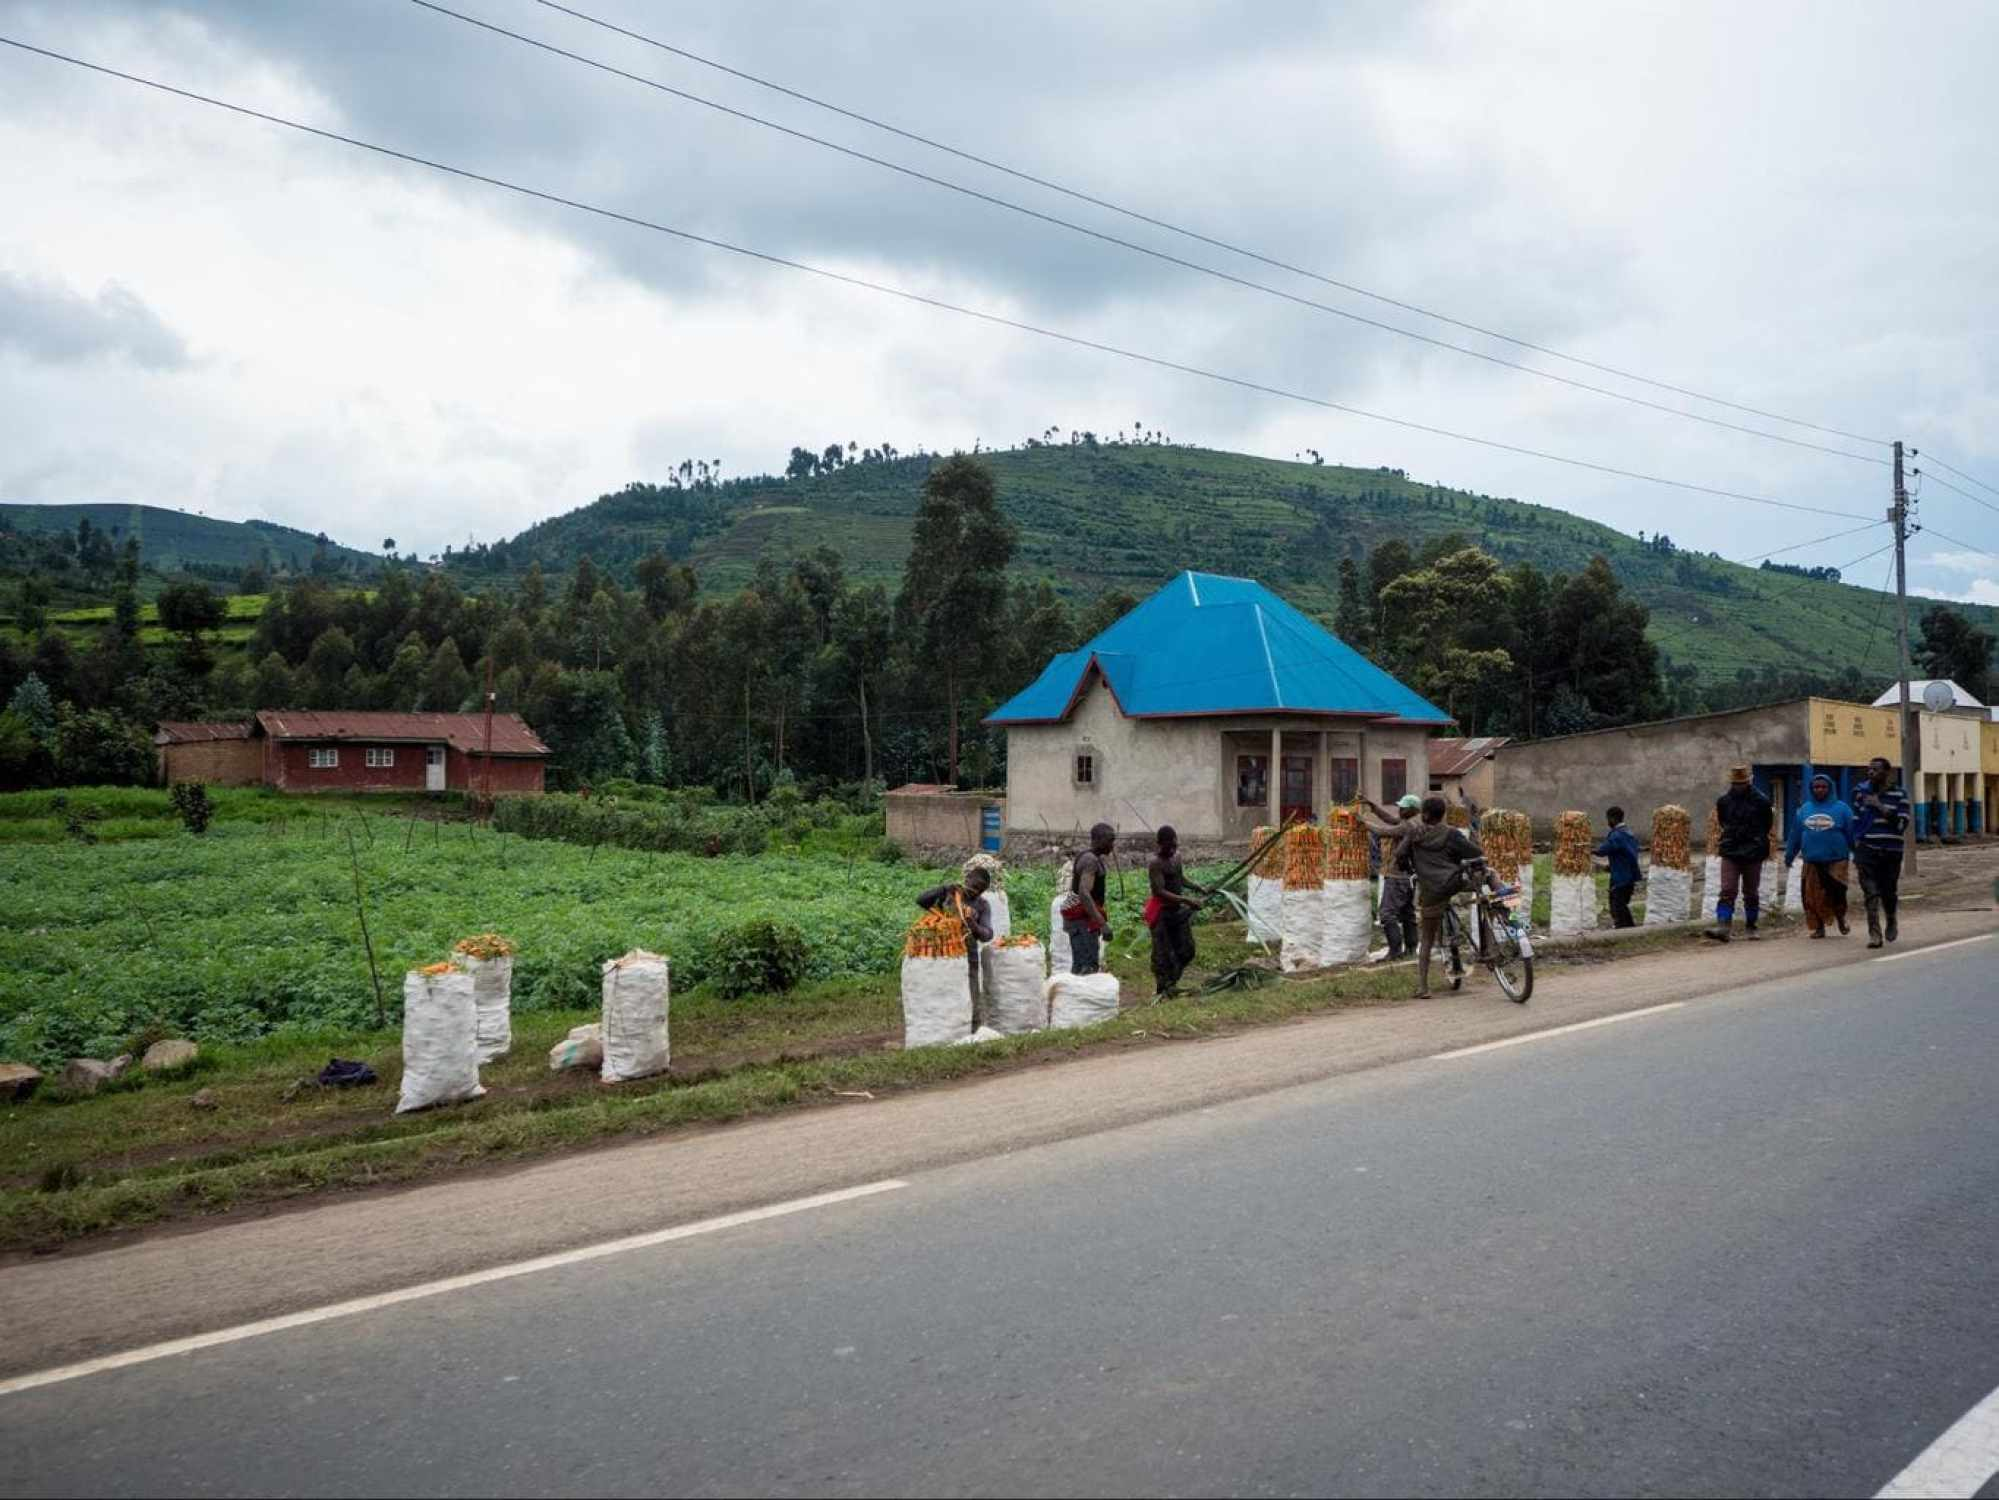 The great infrastructure in Rwanda